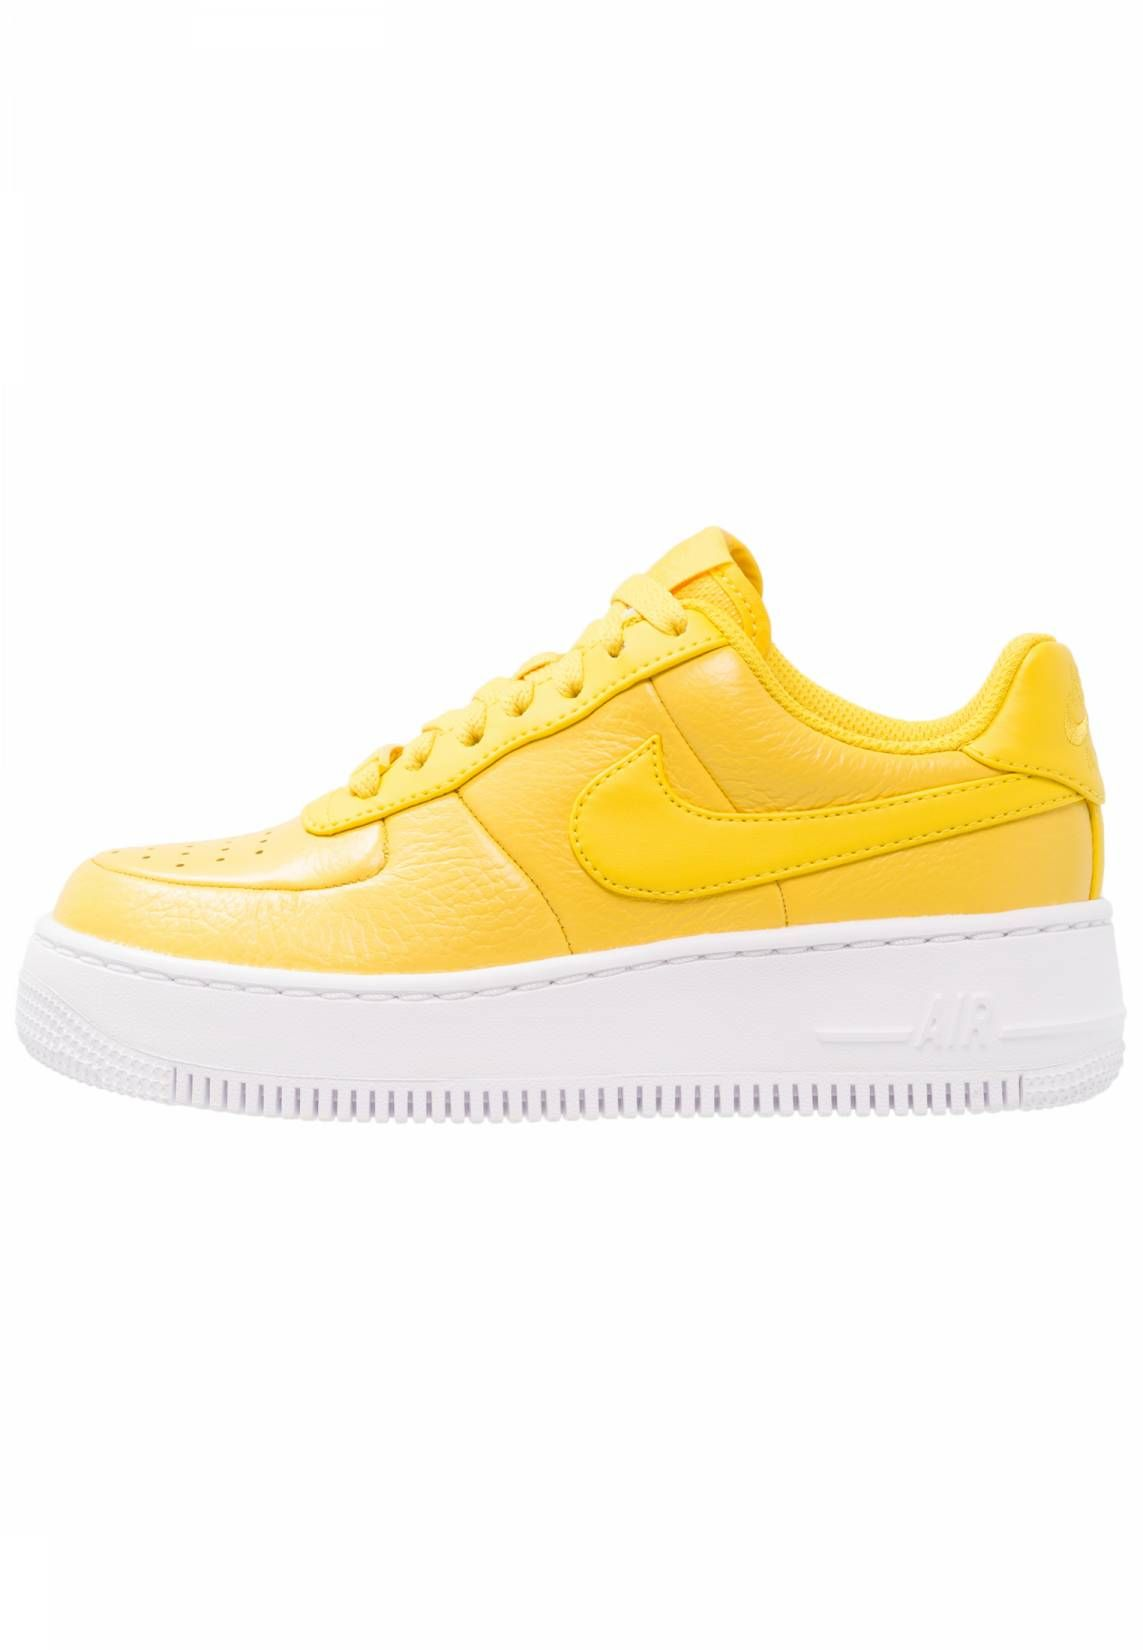 Nike Sportswear. AIR FORCE 1 UPSTEP PRM LX Zapatillas